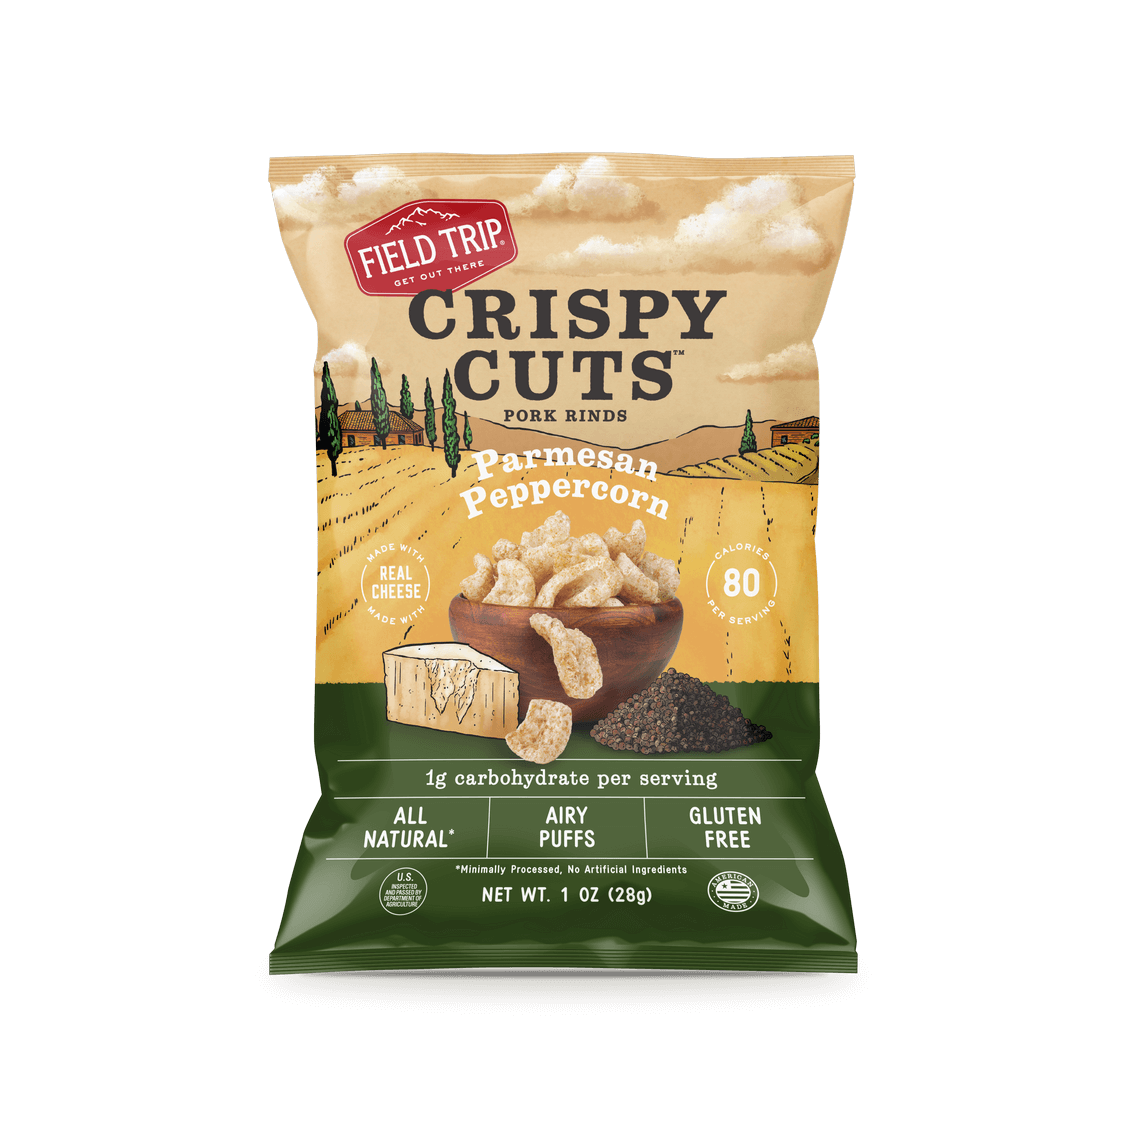 Field trip parmesan peppercorn crispy cuts oz bag front